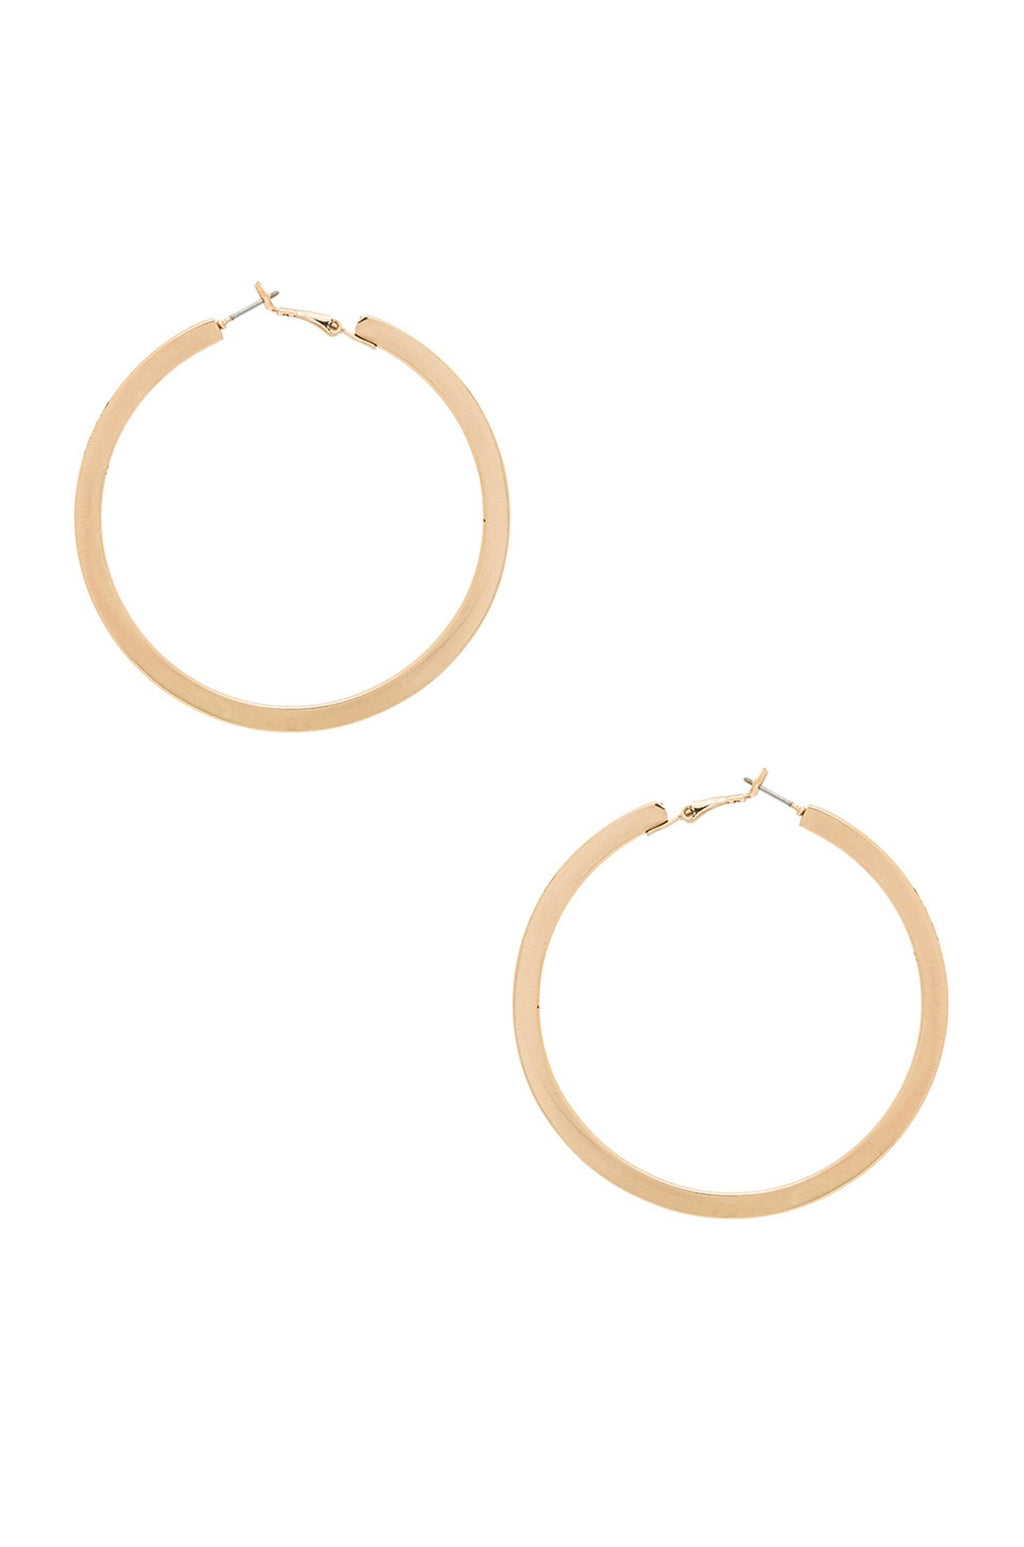 Calypso 18k Gold Plated Hoop Earrings